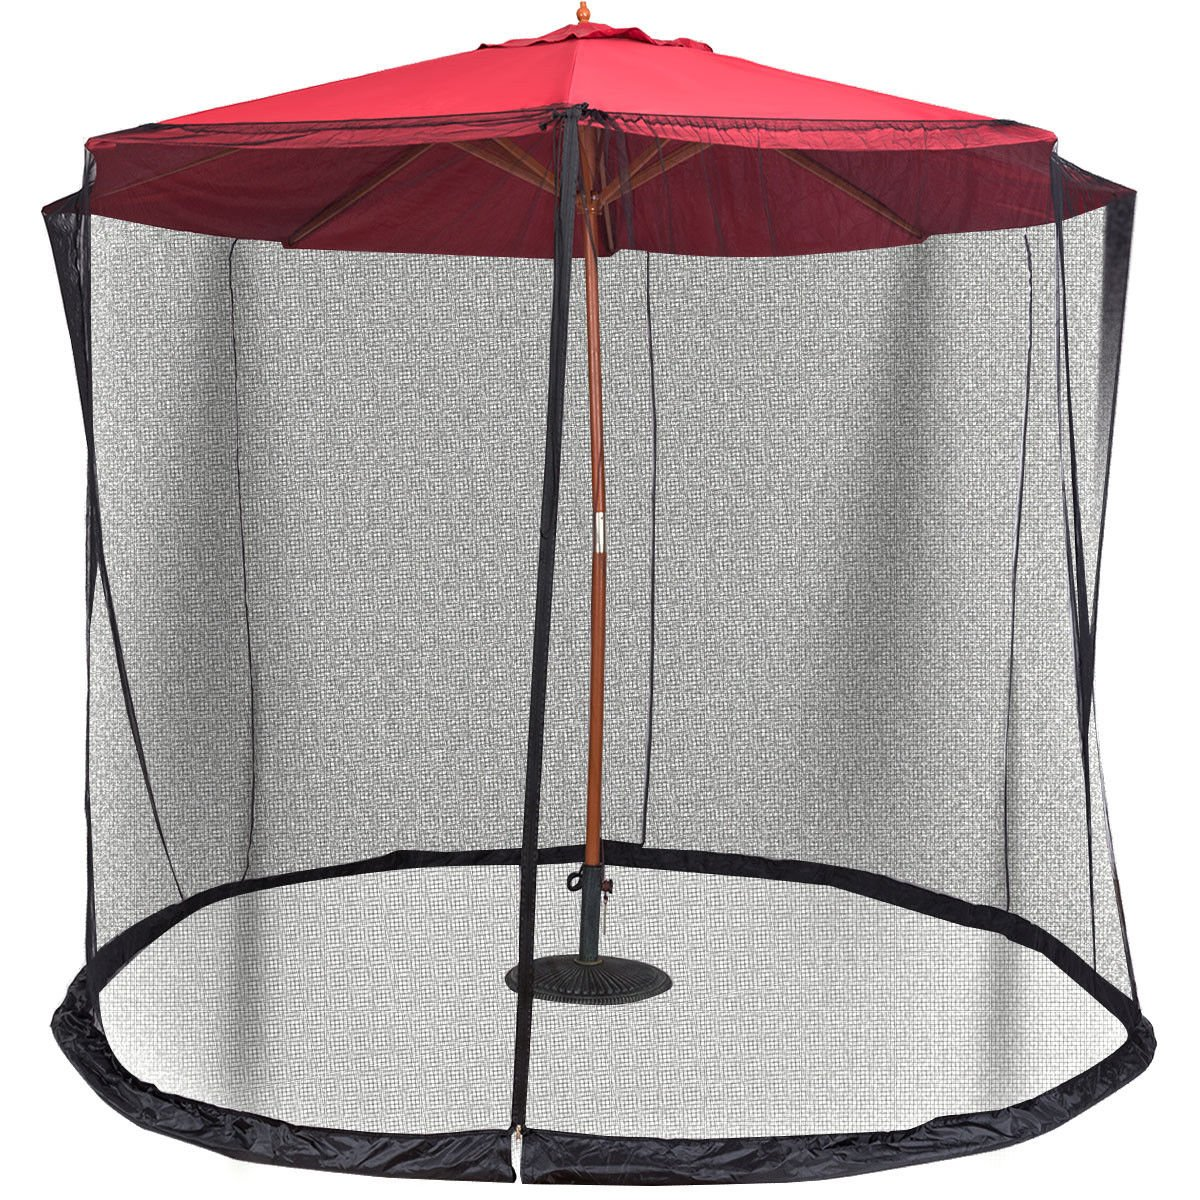 Globe House Products GHP Outdoor Black 30'Lx7'H Lightweight Adjustable Umbrella Screen Cover/Canopy